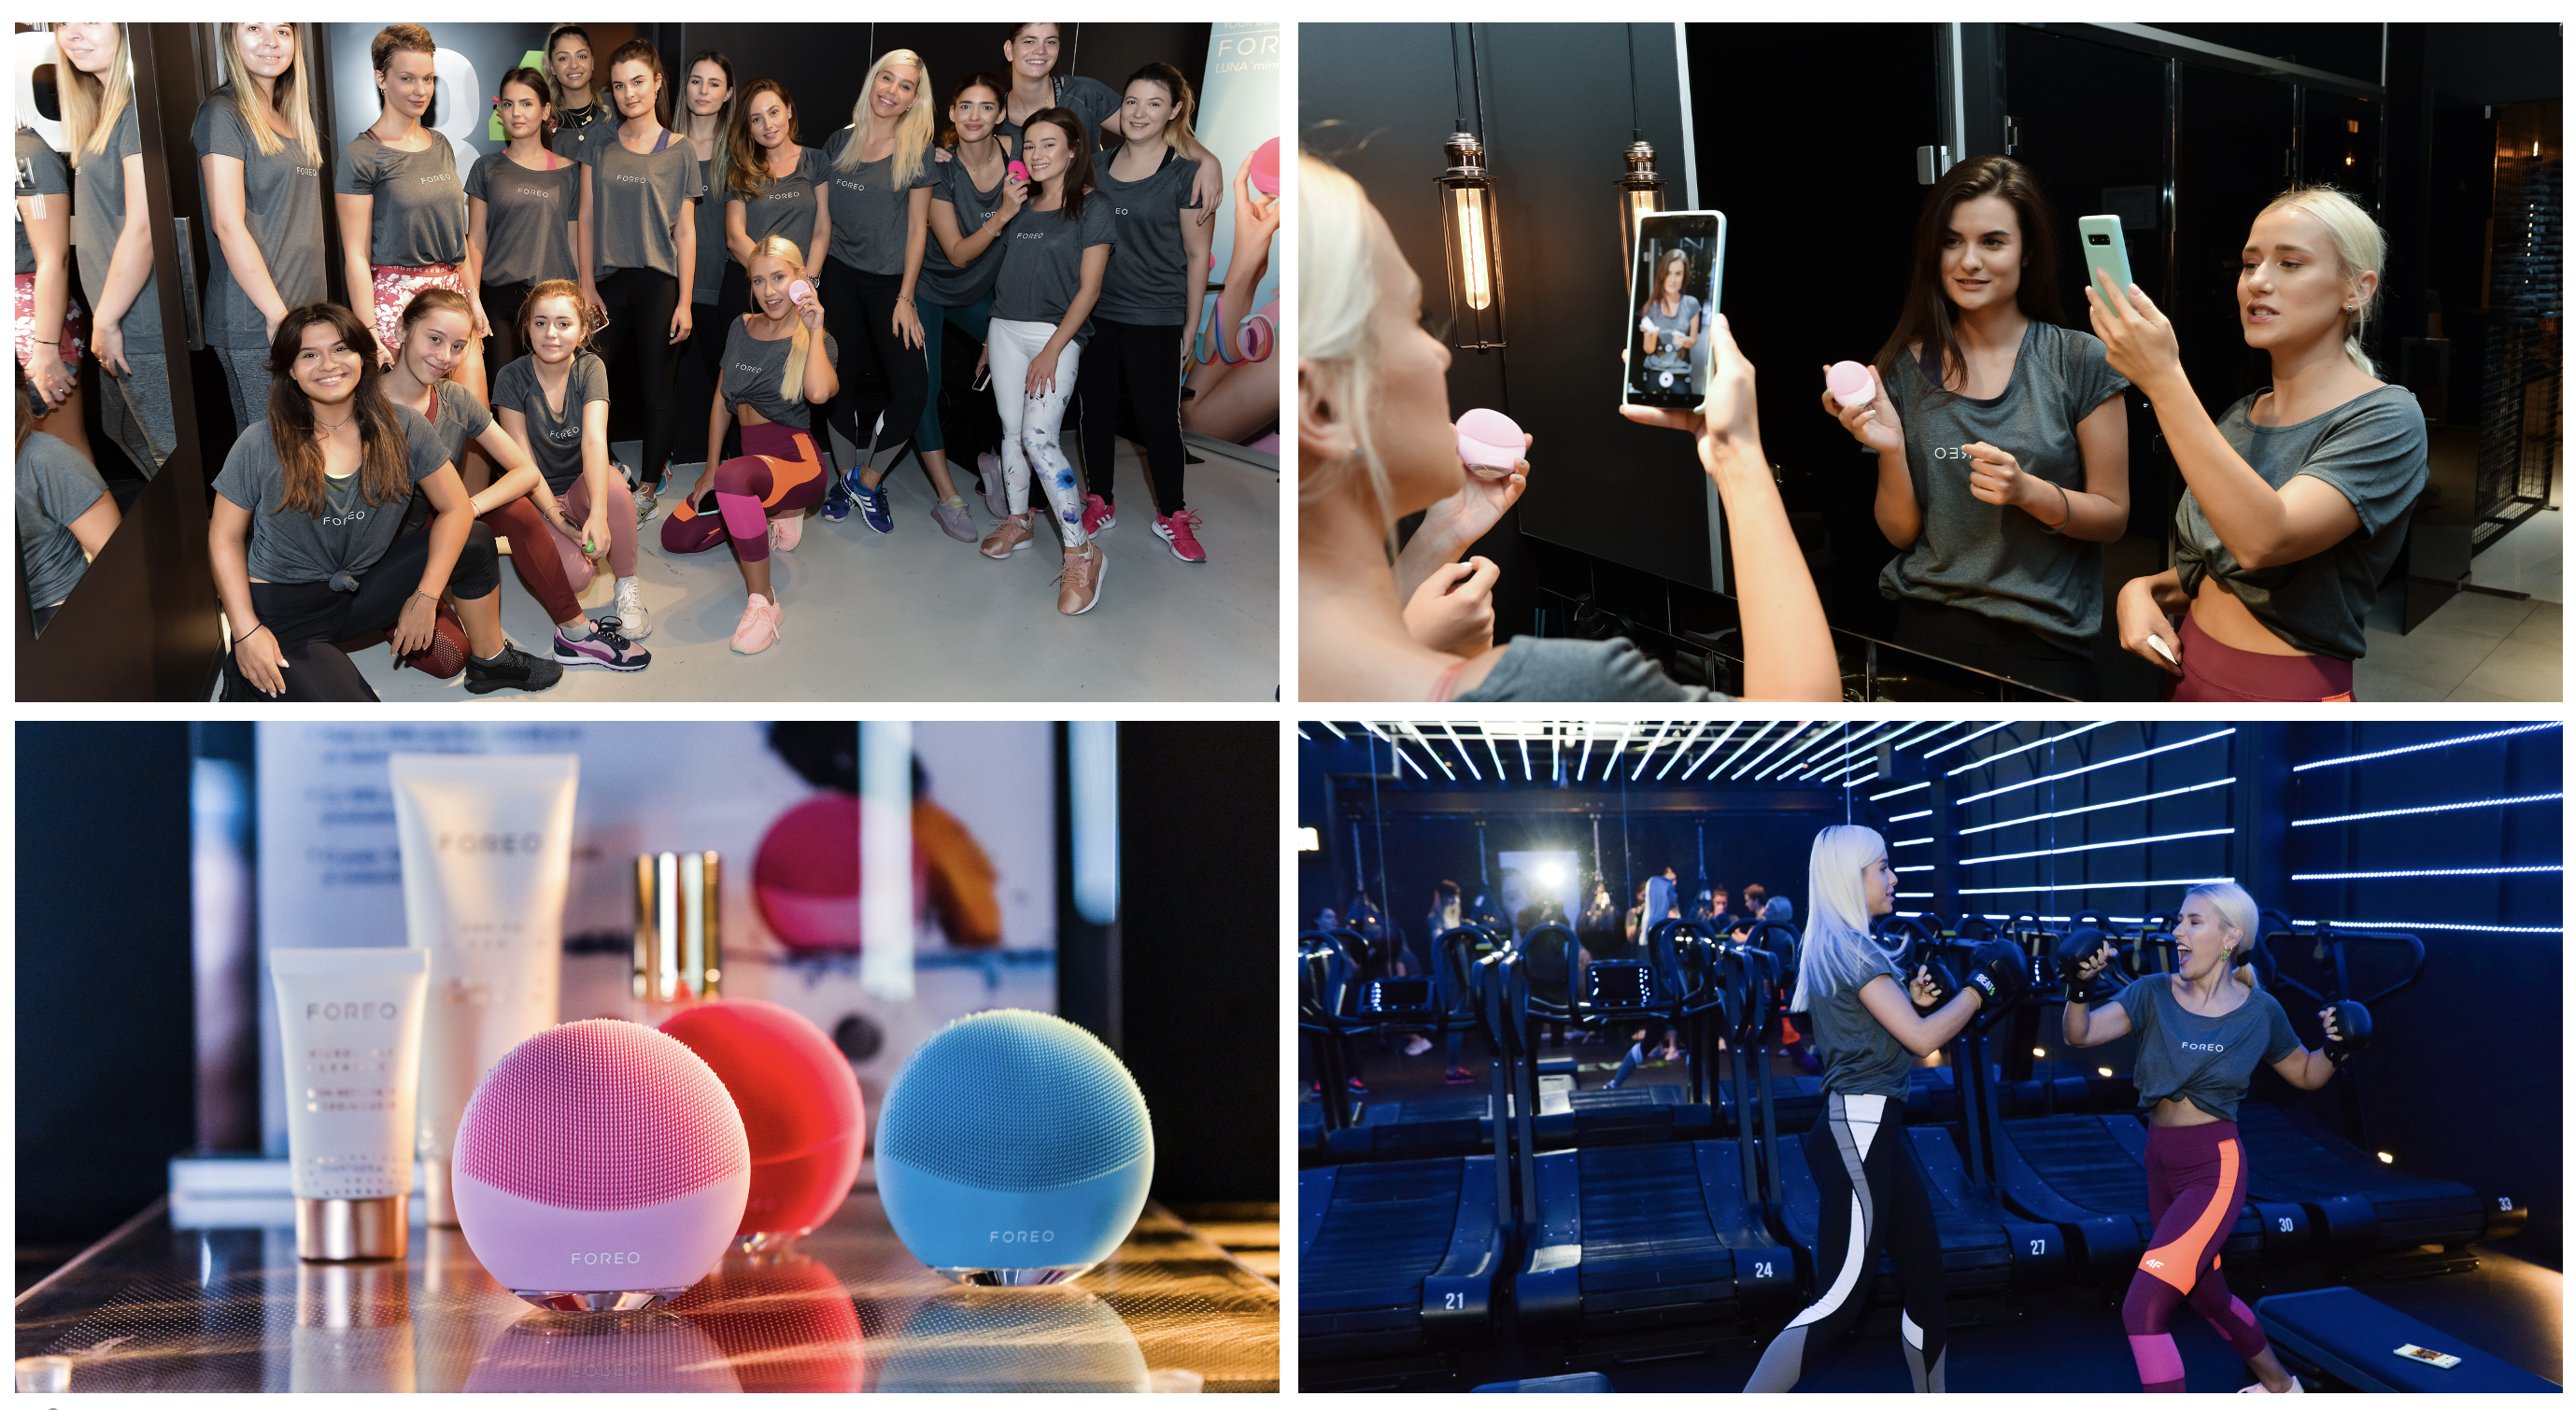 FOREO influencer meet-up